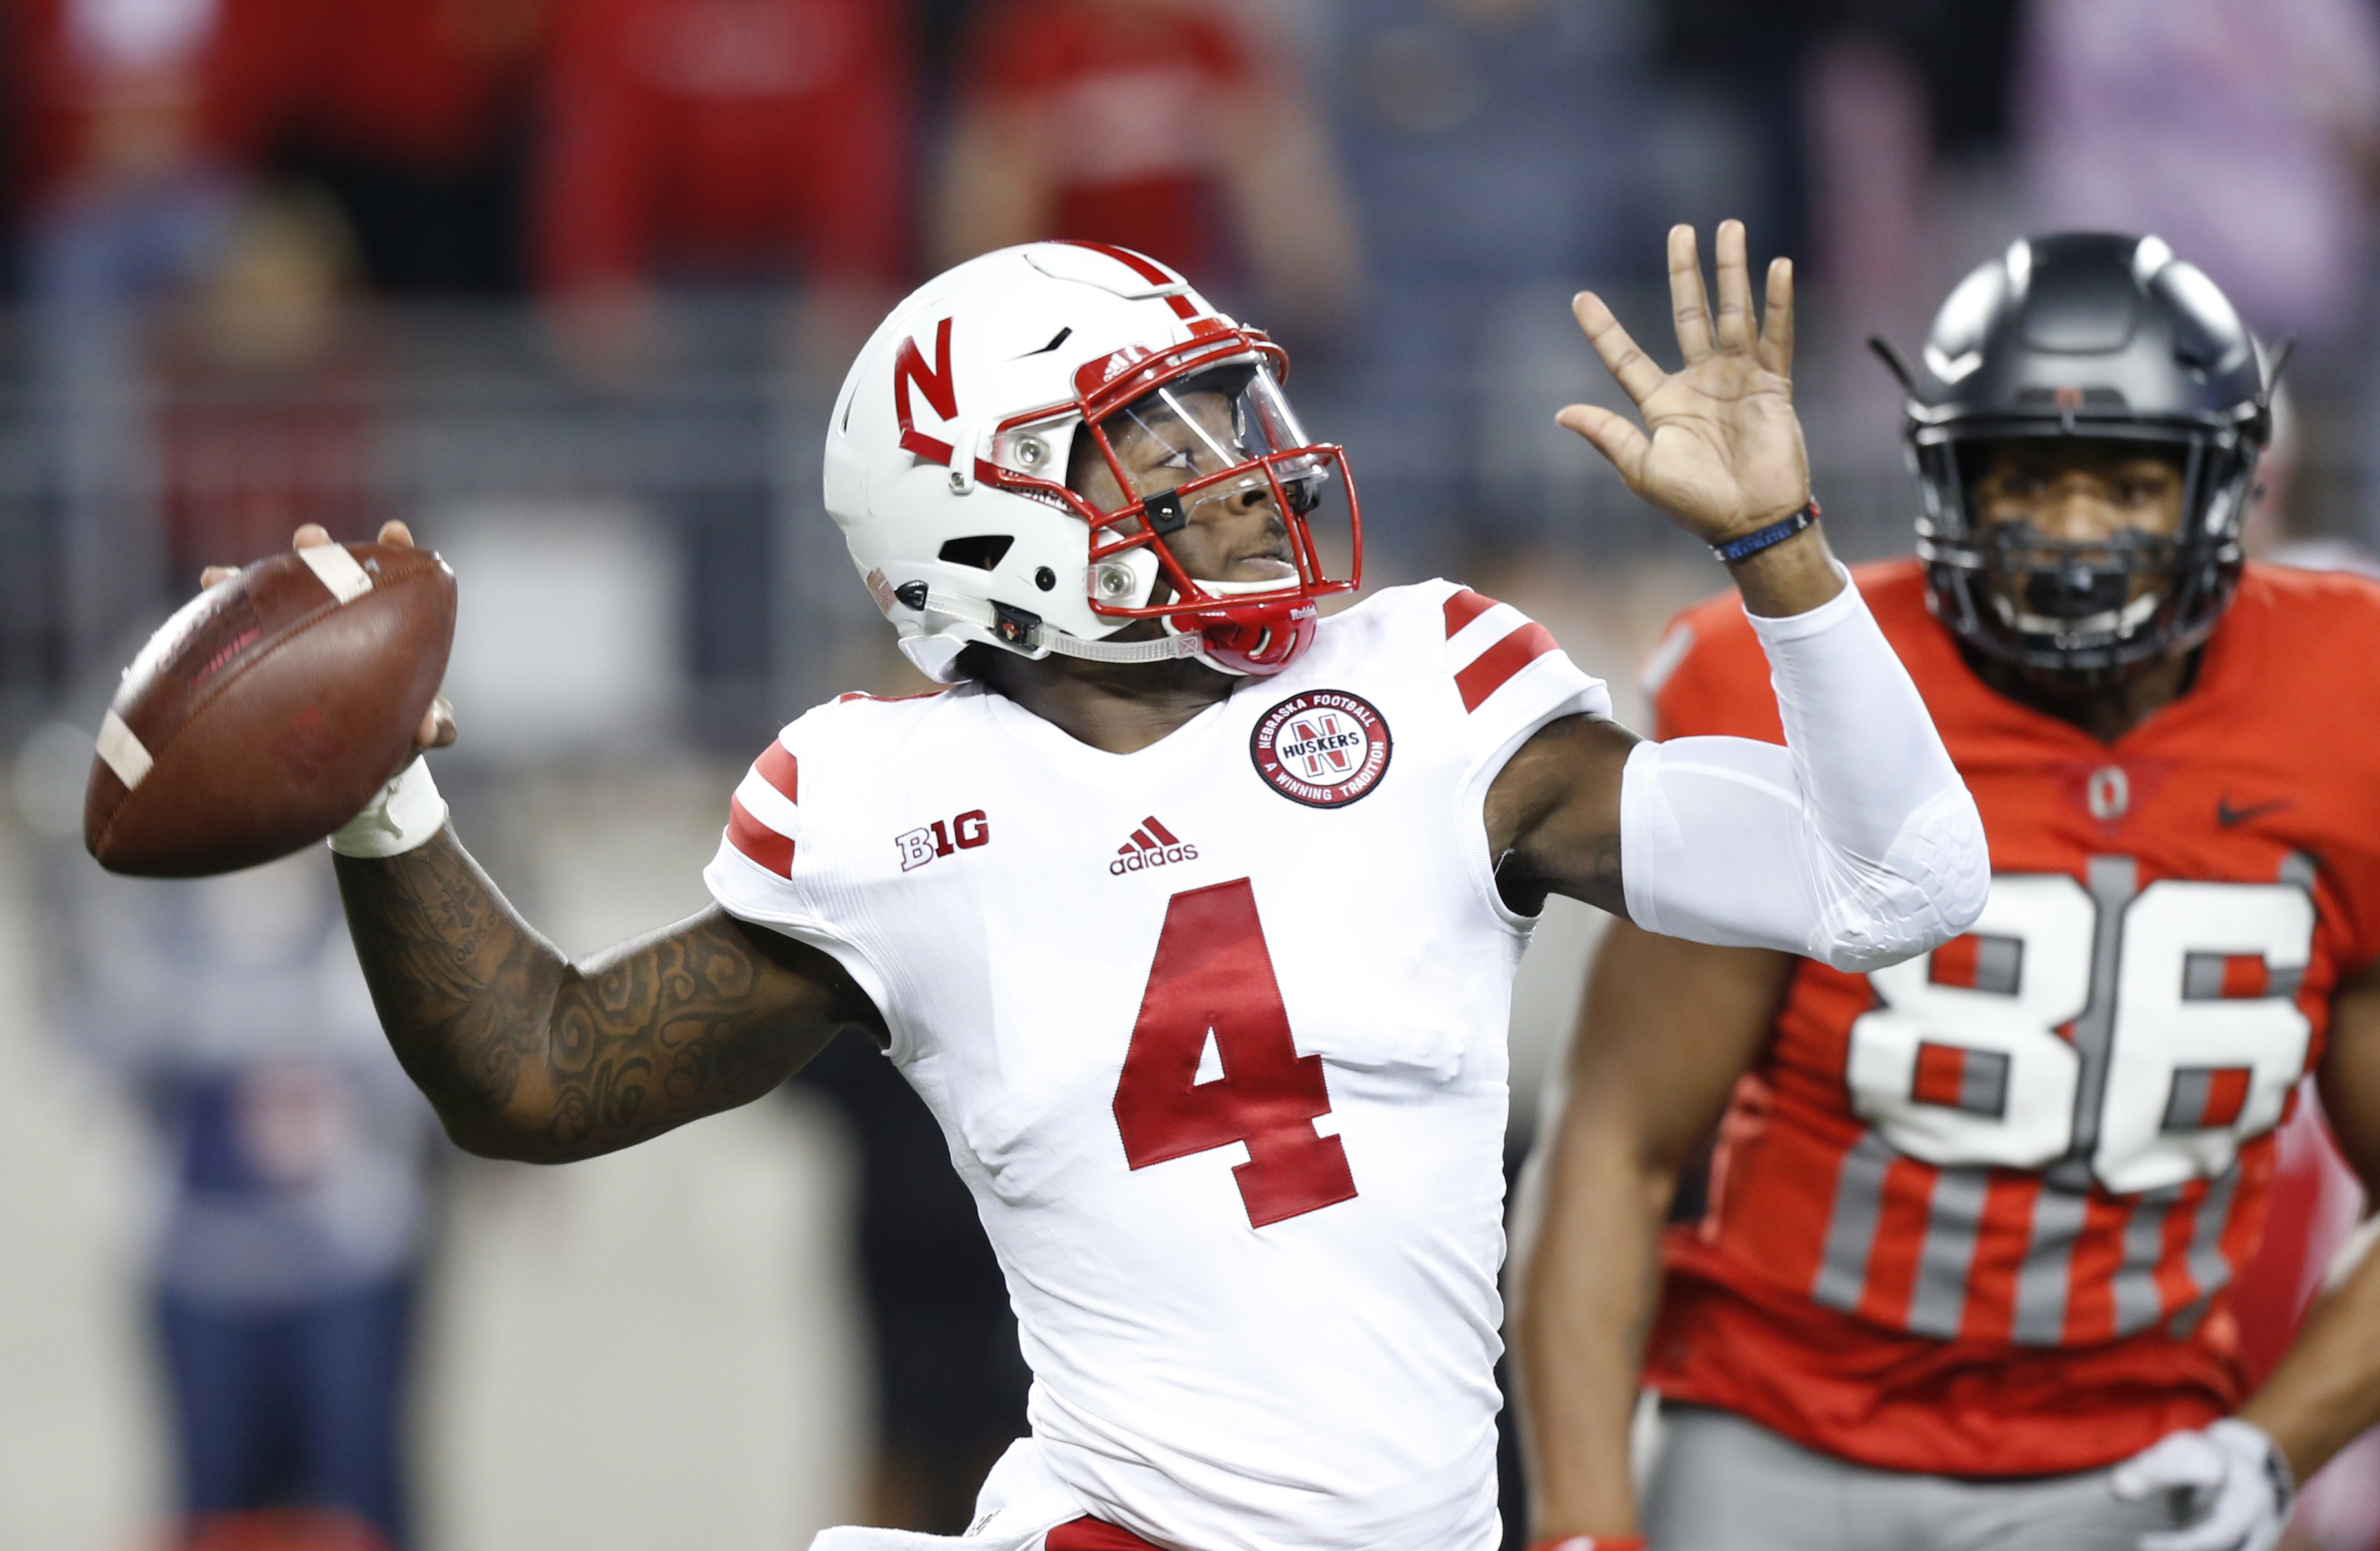 FILE - In this Nov. 5, 2016, file photo, Nebraska quarterback Tommy Armstrong throws a pass against Ohio State during the first half of an NCAA college football game in Columbus, Ohio. Nebraska plays at Iowa on Friday. (AP Photo/Jay LaPrete, File)